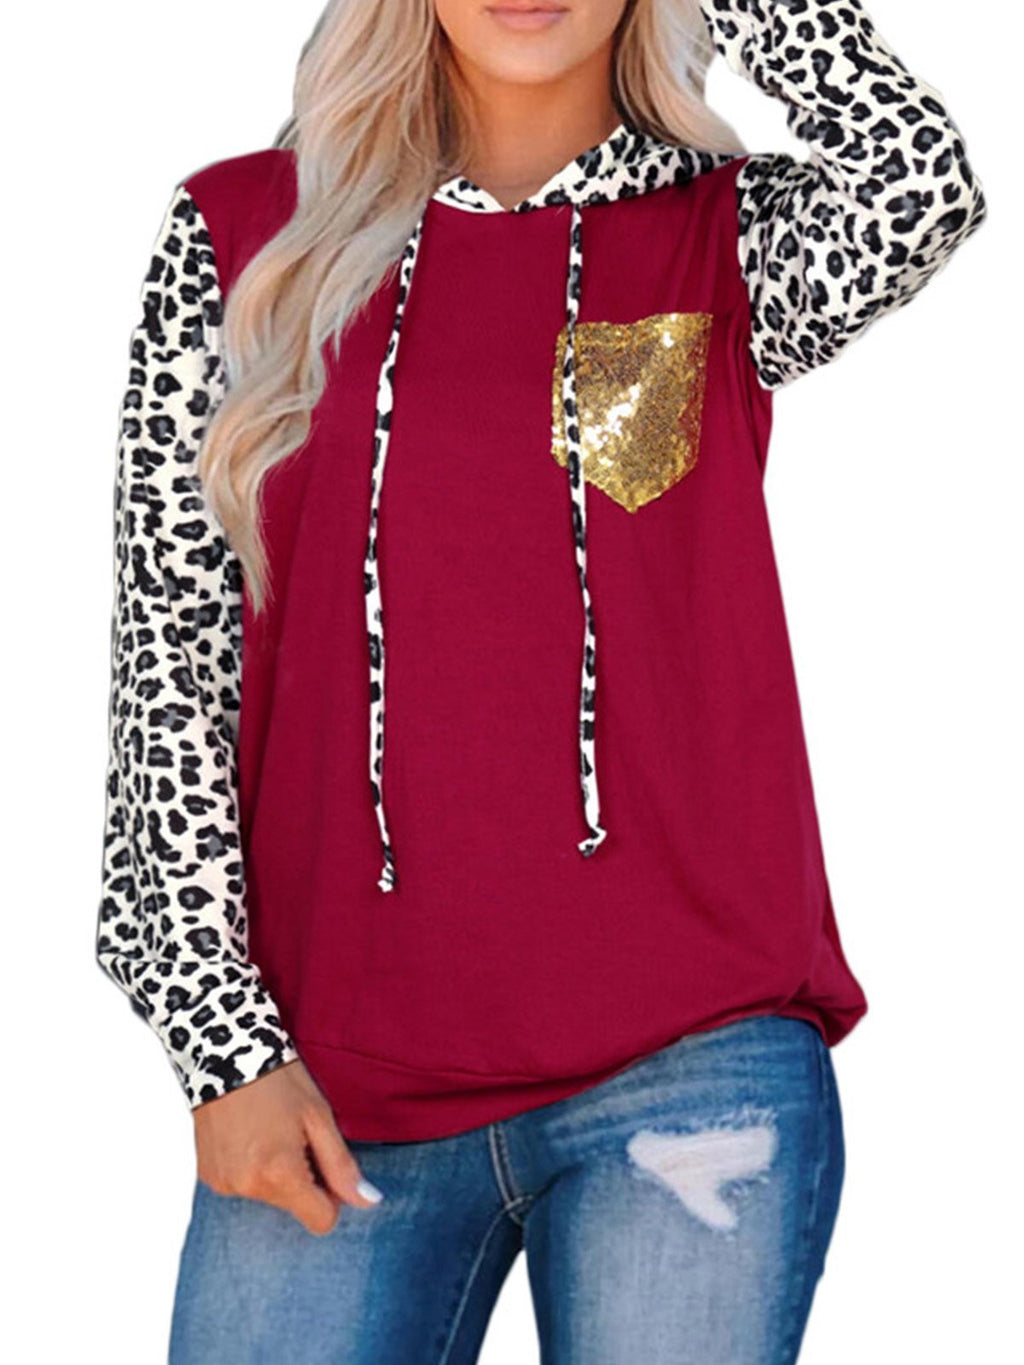 Long Sleeve Shirt with Sequin Pockets Leopard Print Sleeves